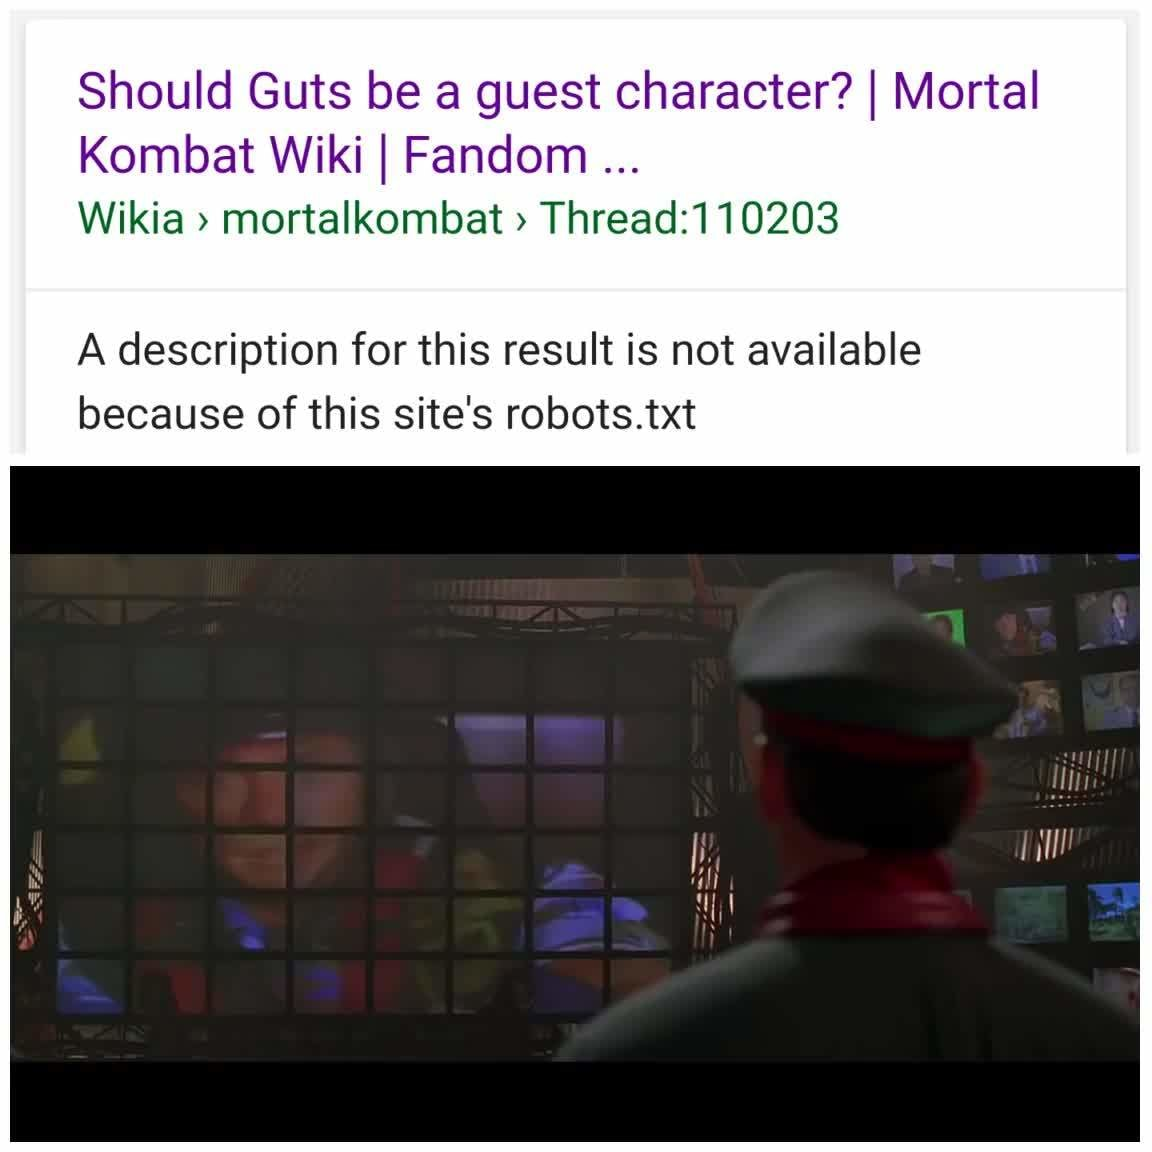 Should Guts be a guest character? I Mortal, Kombat Wiki I Fandom, Wikia >,  mortalkombat >Threadz110203, A description for this result is not  available, because of this site's robots txt